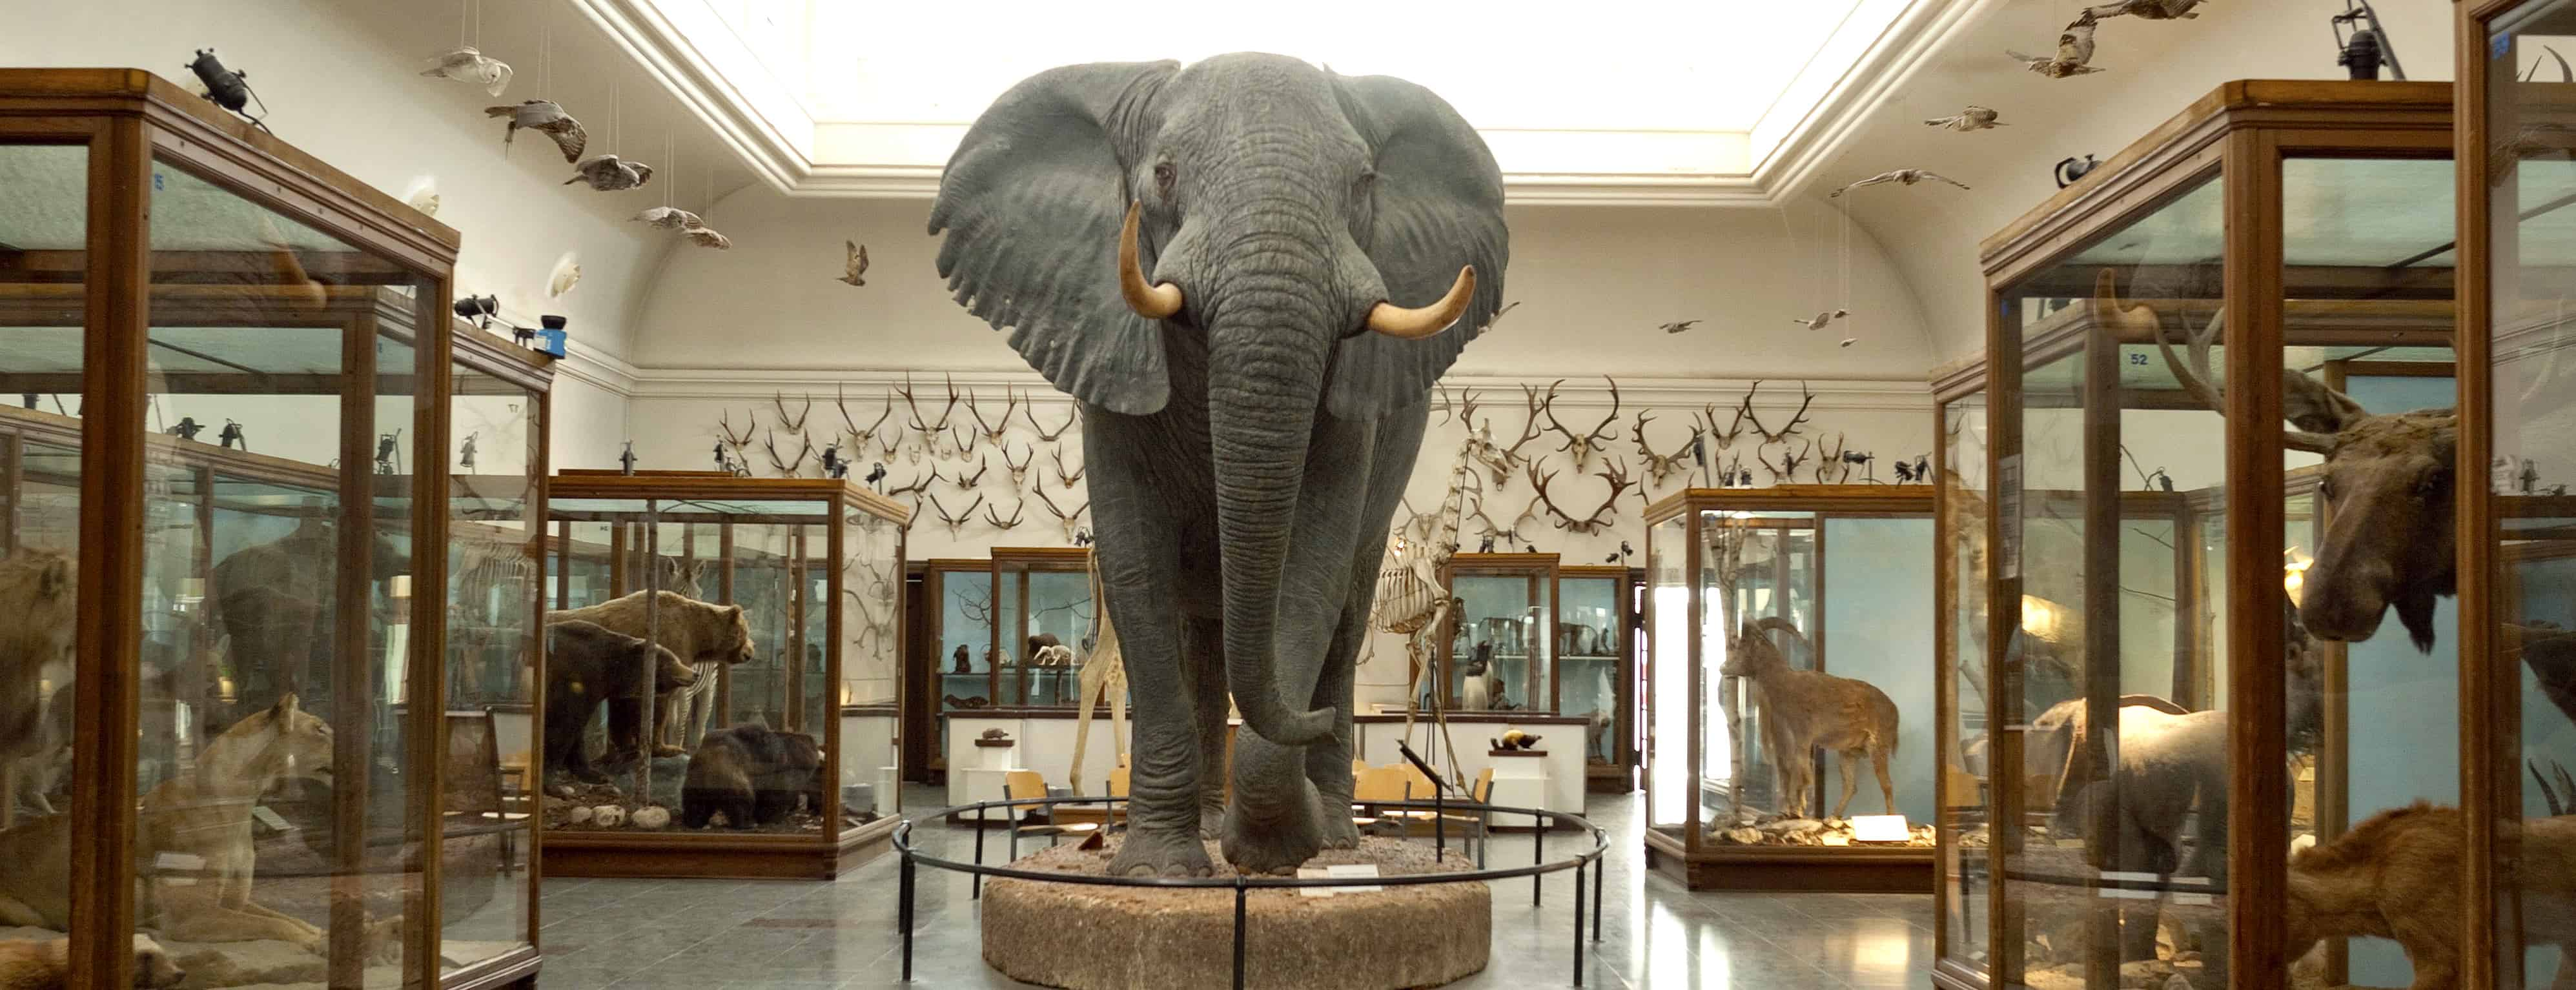 Taxidermy elephant in Natural History Museum